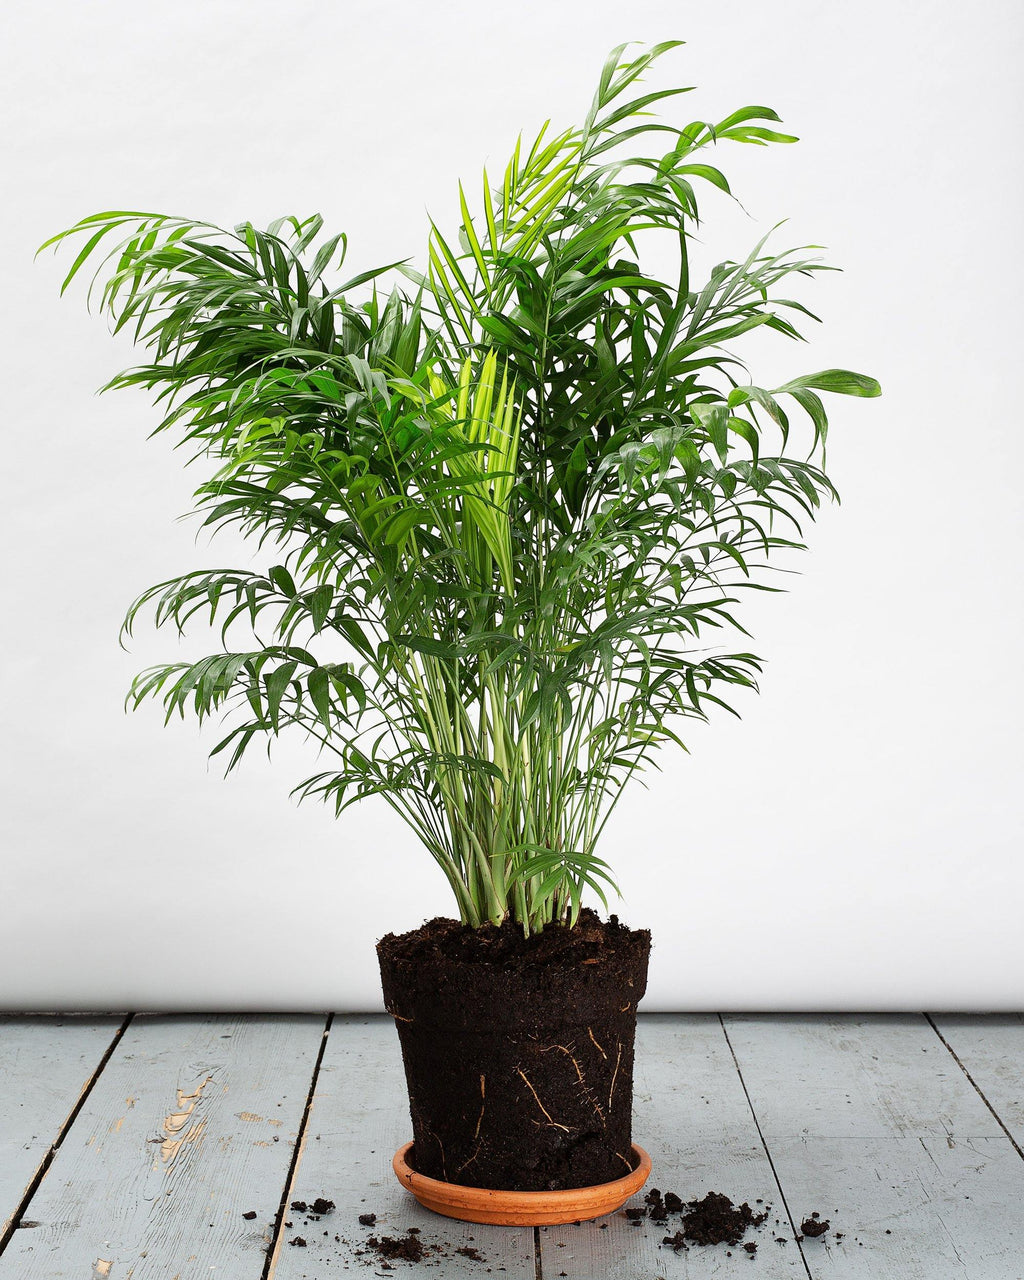 The Parlour Palm, which is a popular plant for beginners.